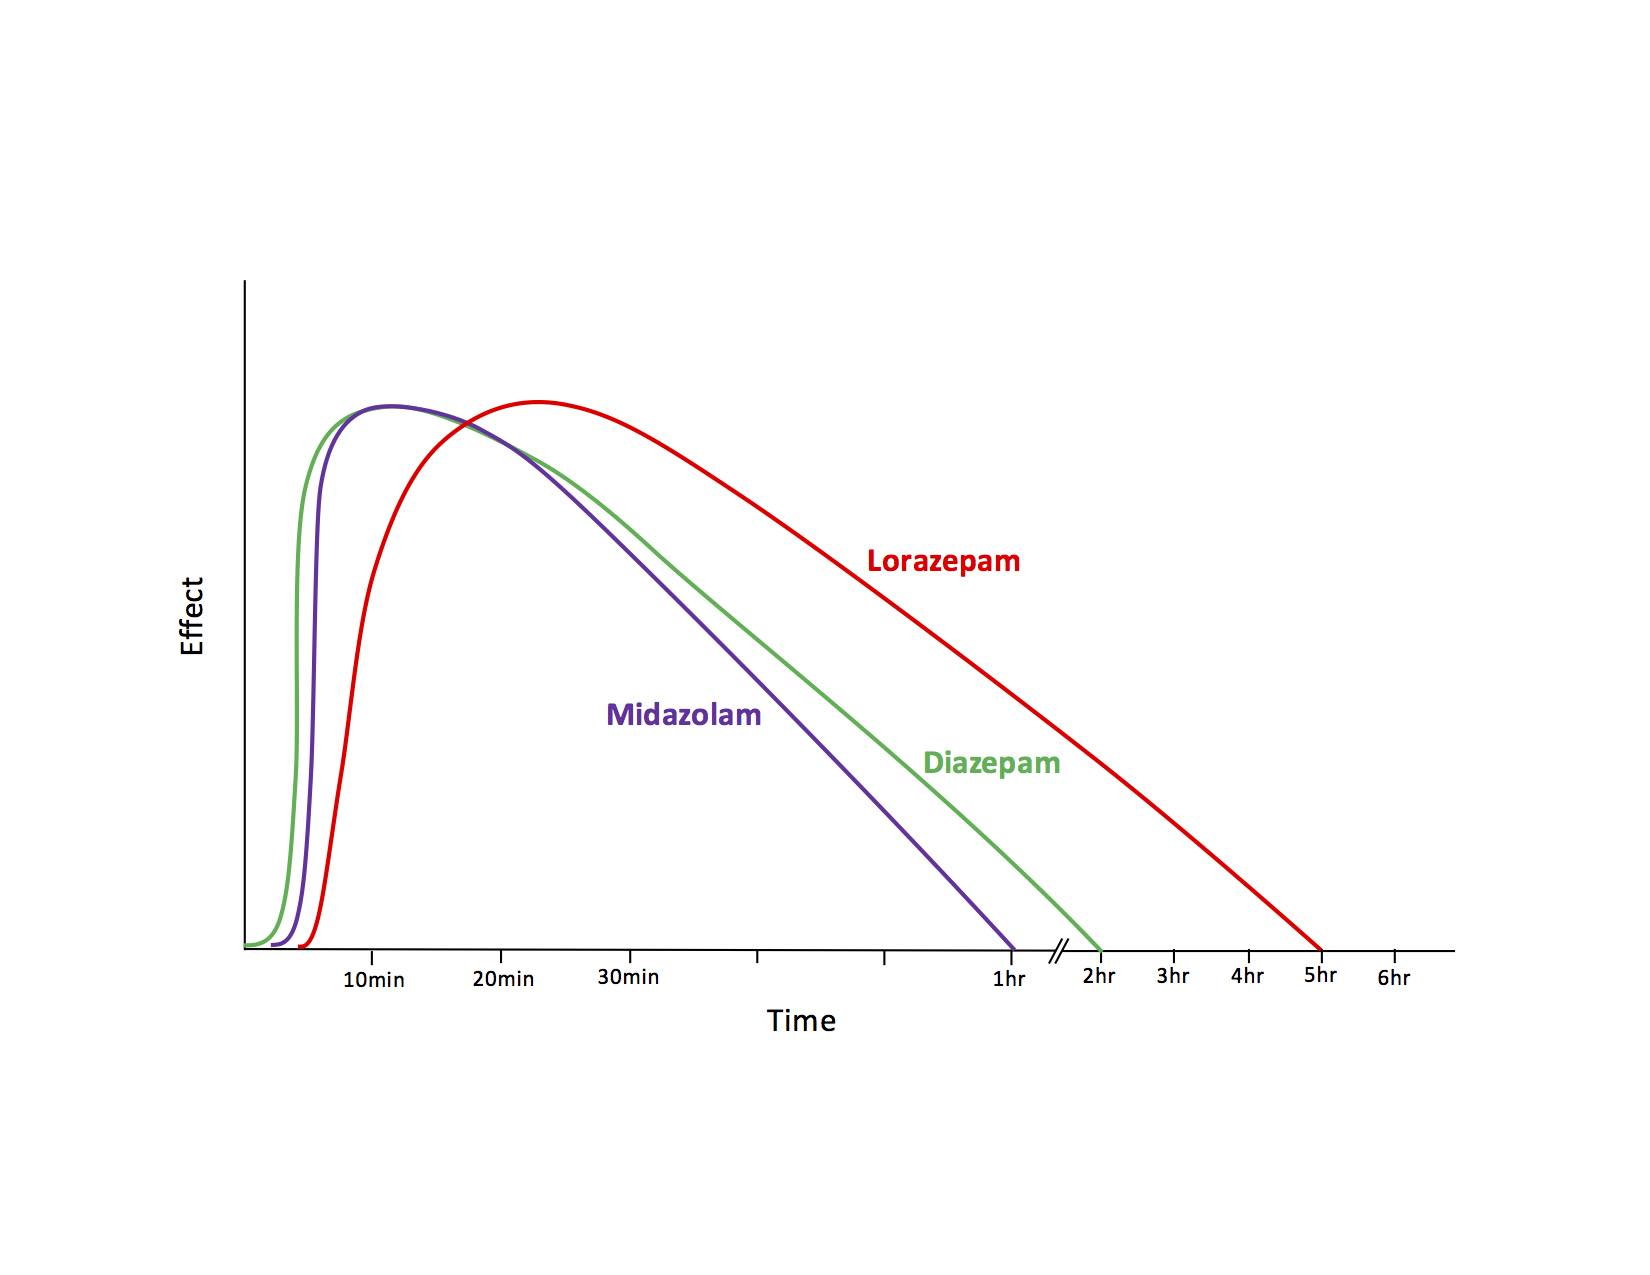 Graph 1. Time to effect and duration of action of IV benzodiazepines for sedation (single dose)